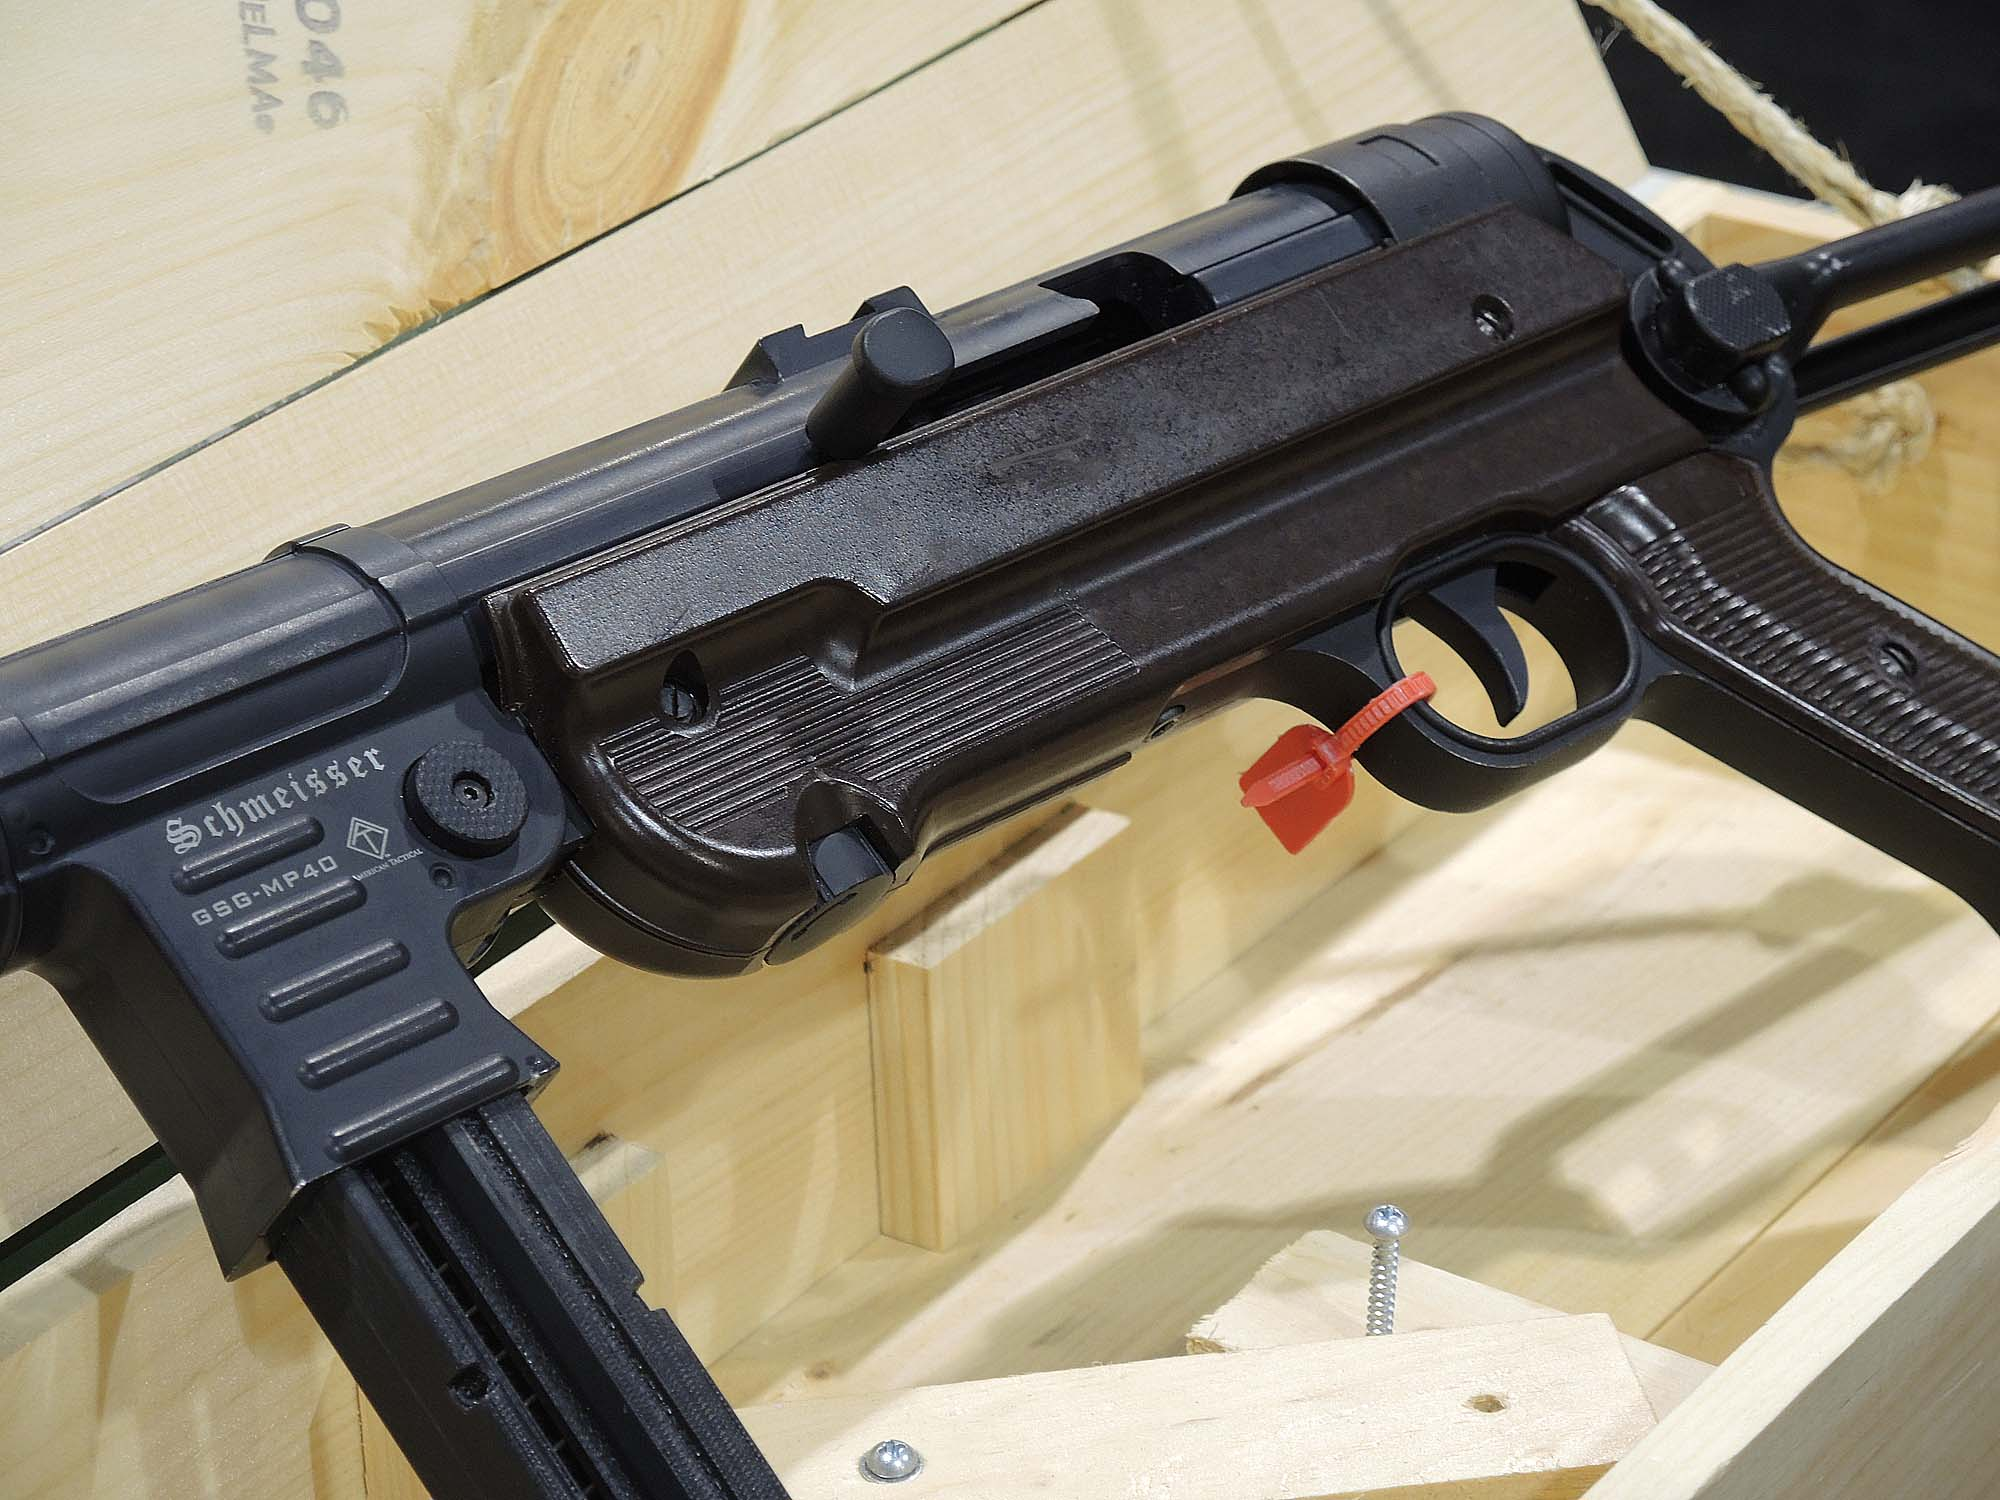 Modern polymers replace the original bakelite used to build the lower receiver housing on the Mp40